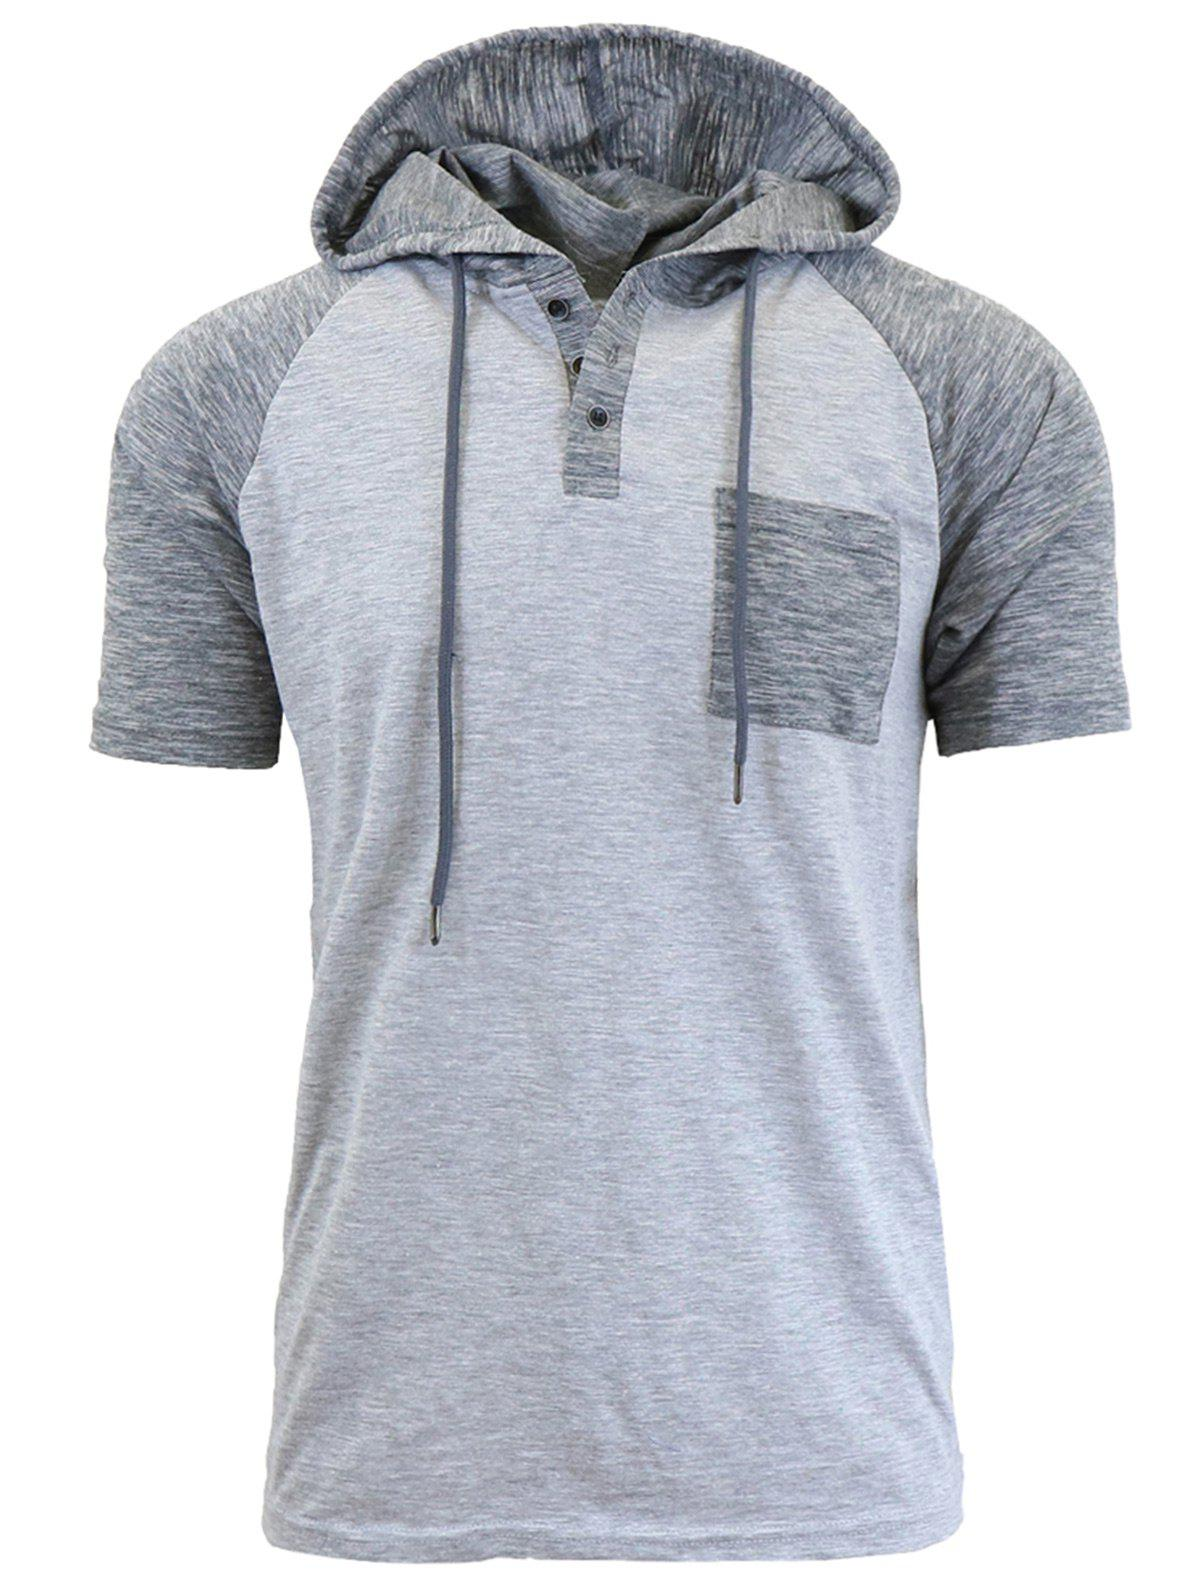 Hooded Drawstring Raglan Sleeve Panel Design T-shirt - Gris Clair M